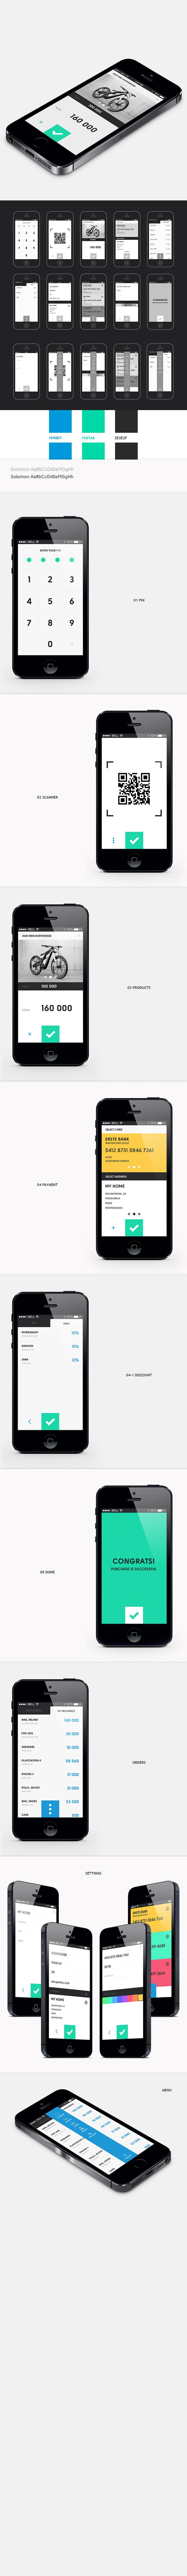 #ios #ui #app #ux #design #mobile #application #gui BRIEF PAY iOS APP Brief Pay is an iOs app that lets you use your phone to pay for things in shops. The app use the QR code technology to secure the transaction.